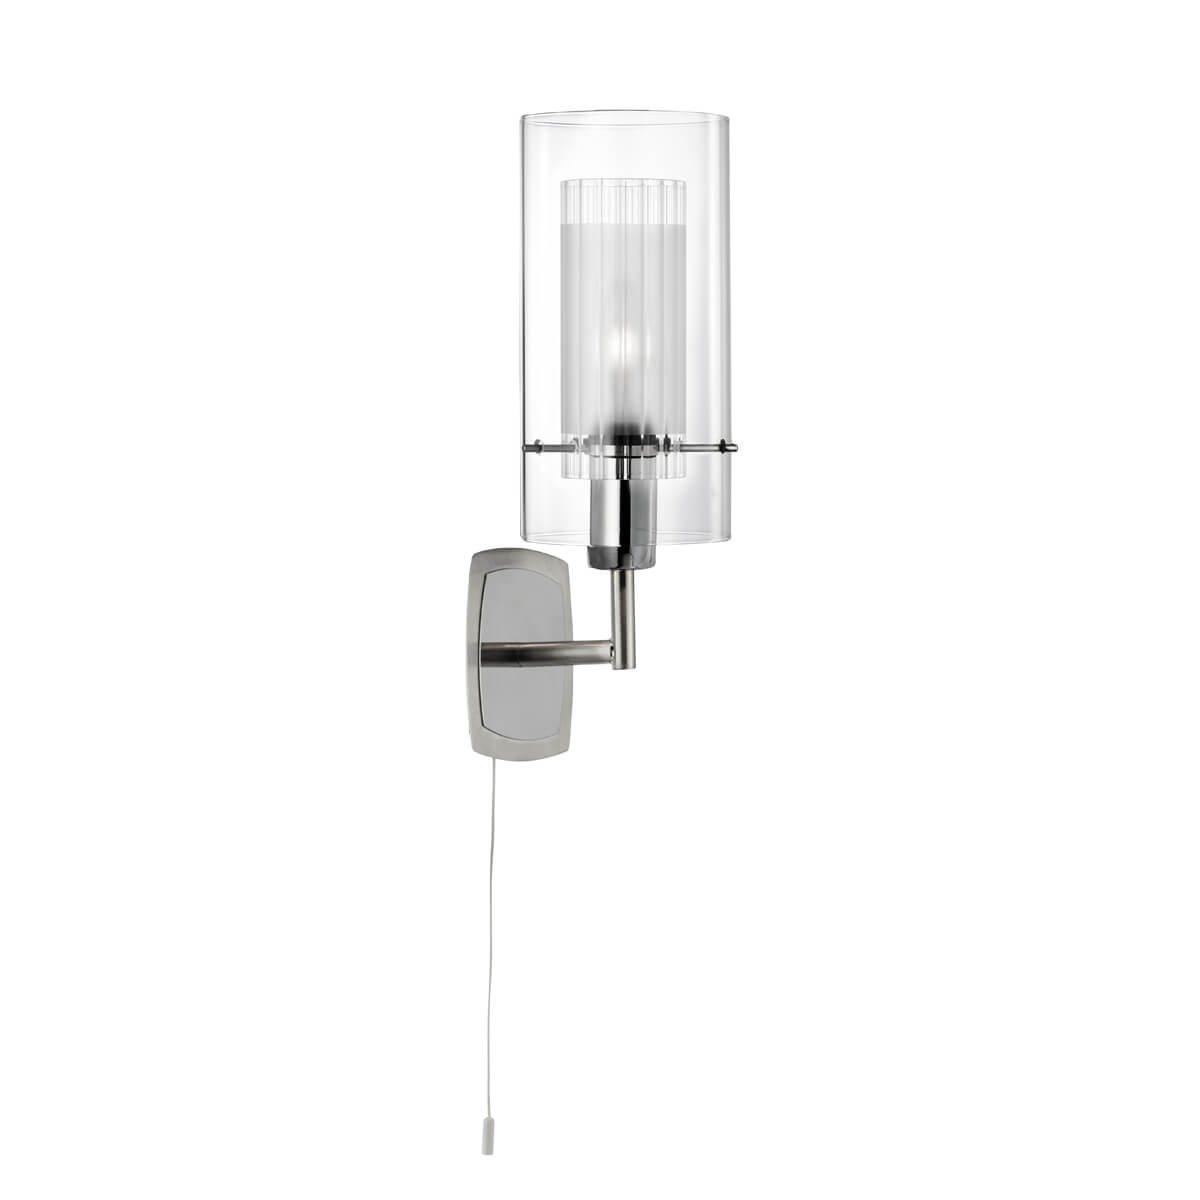 St2300 1 Double Glass Wall Light National Lighting